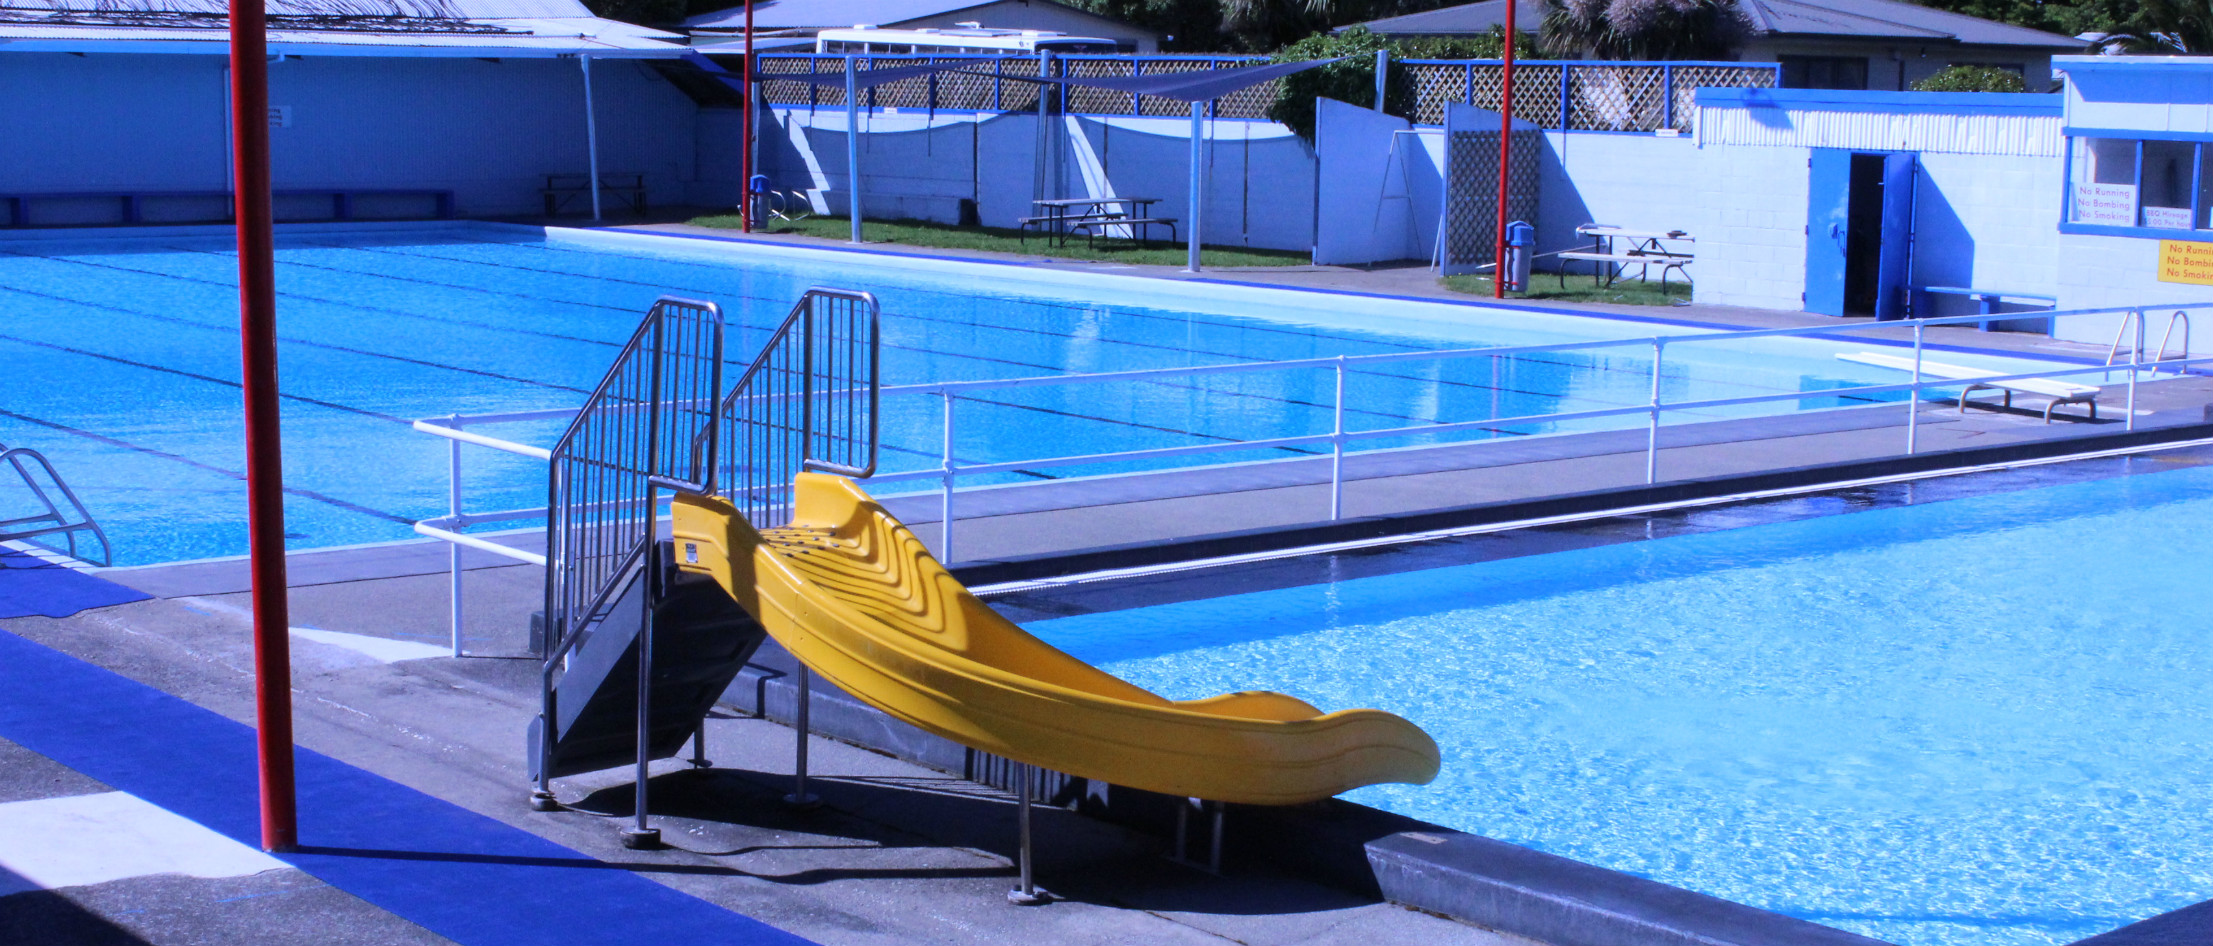 Aquatic Facilities Review released